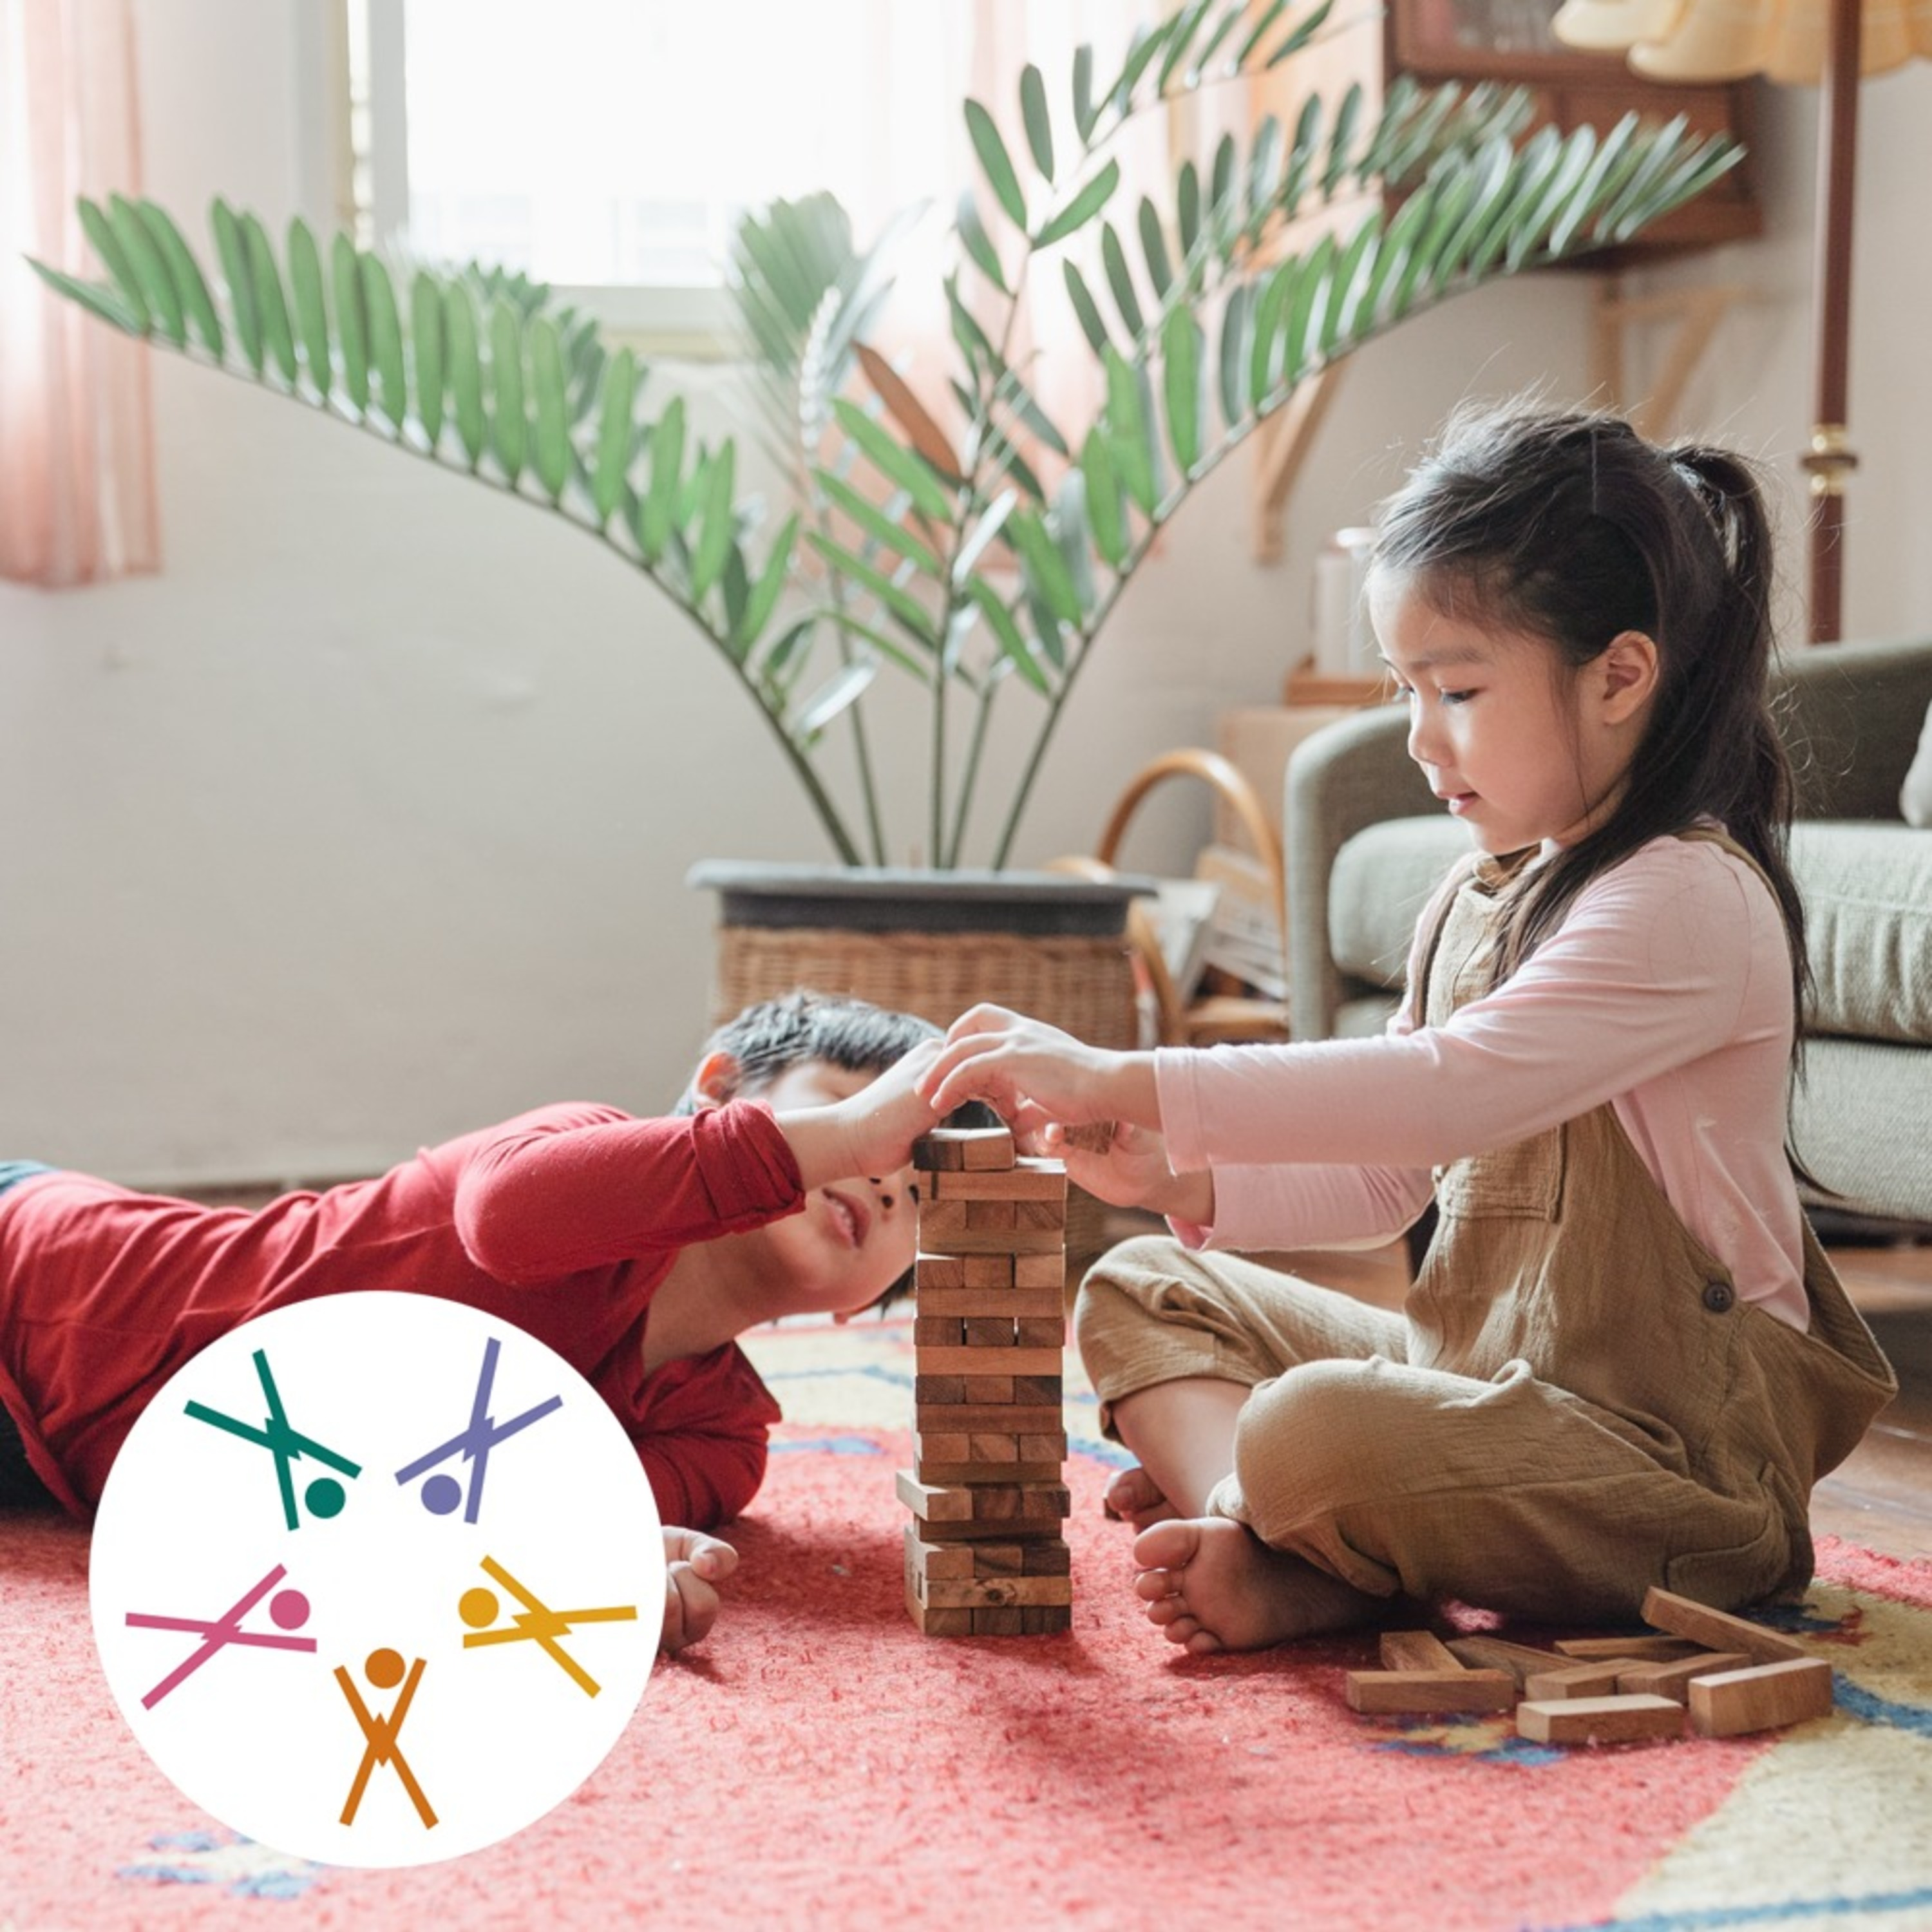 Episode 78: Five Things Families Can Do to Foster Relationships Between Children who Struggle and Typically Developing Siblings